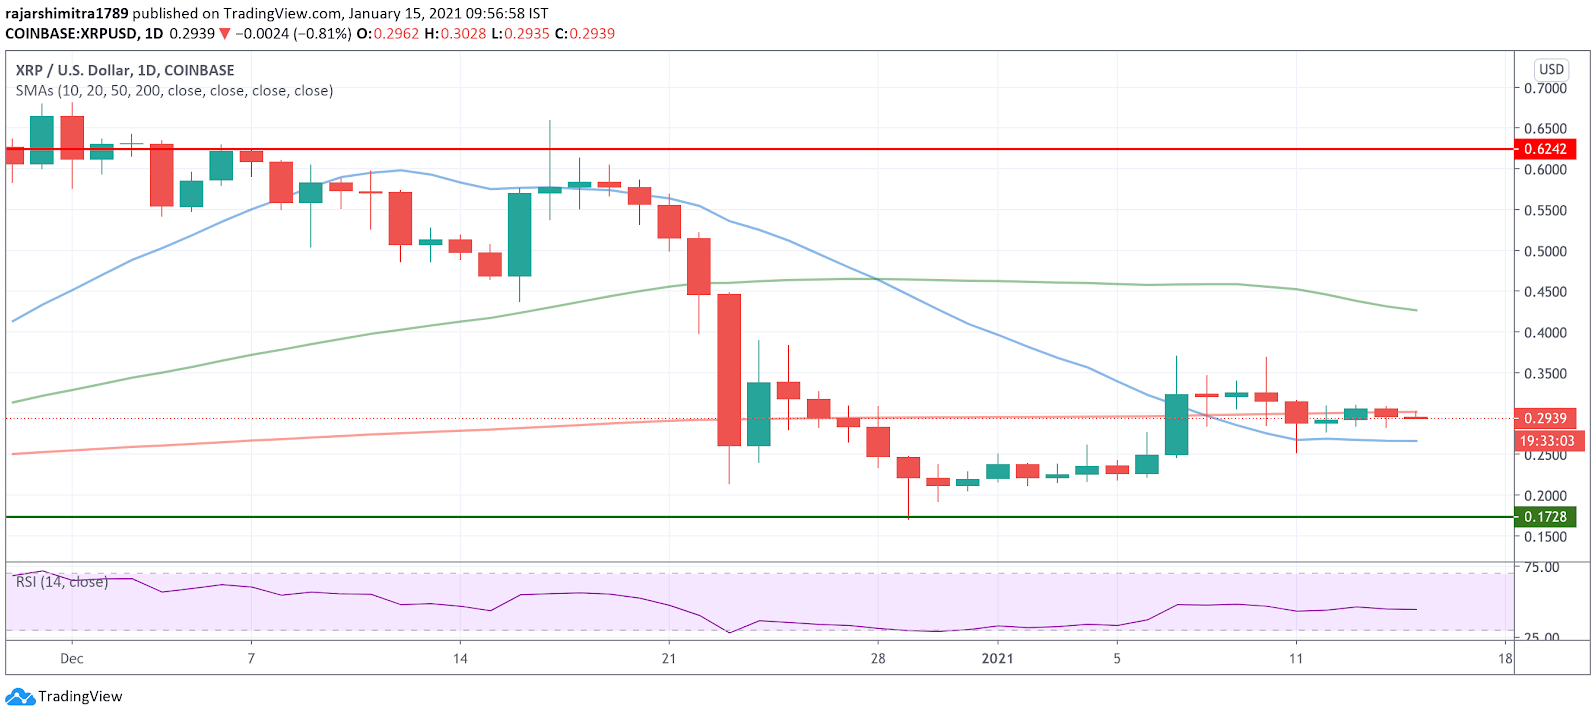 xrp/usd daily chart 011521